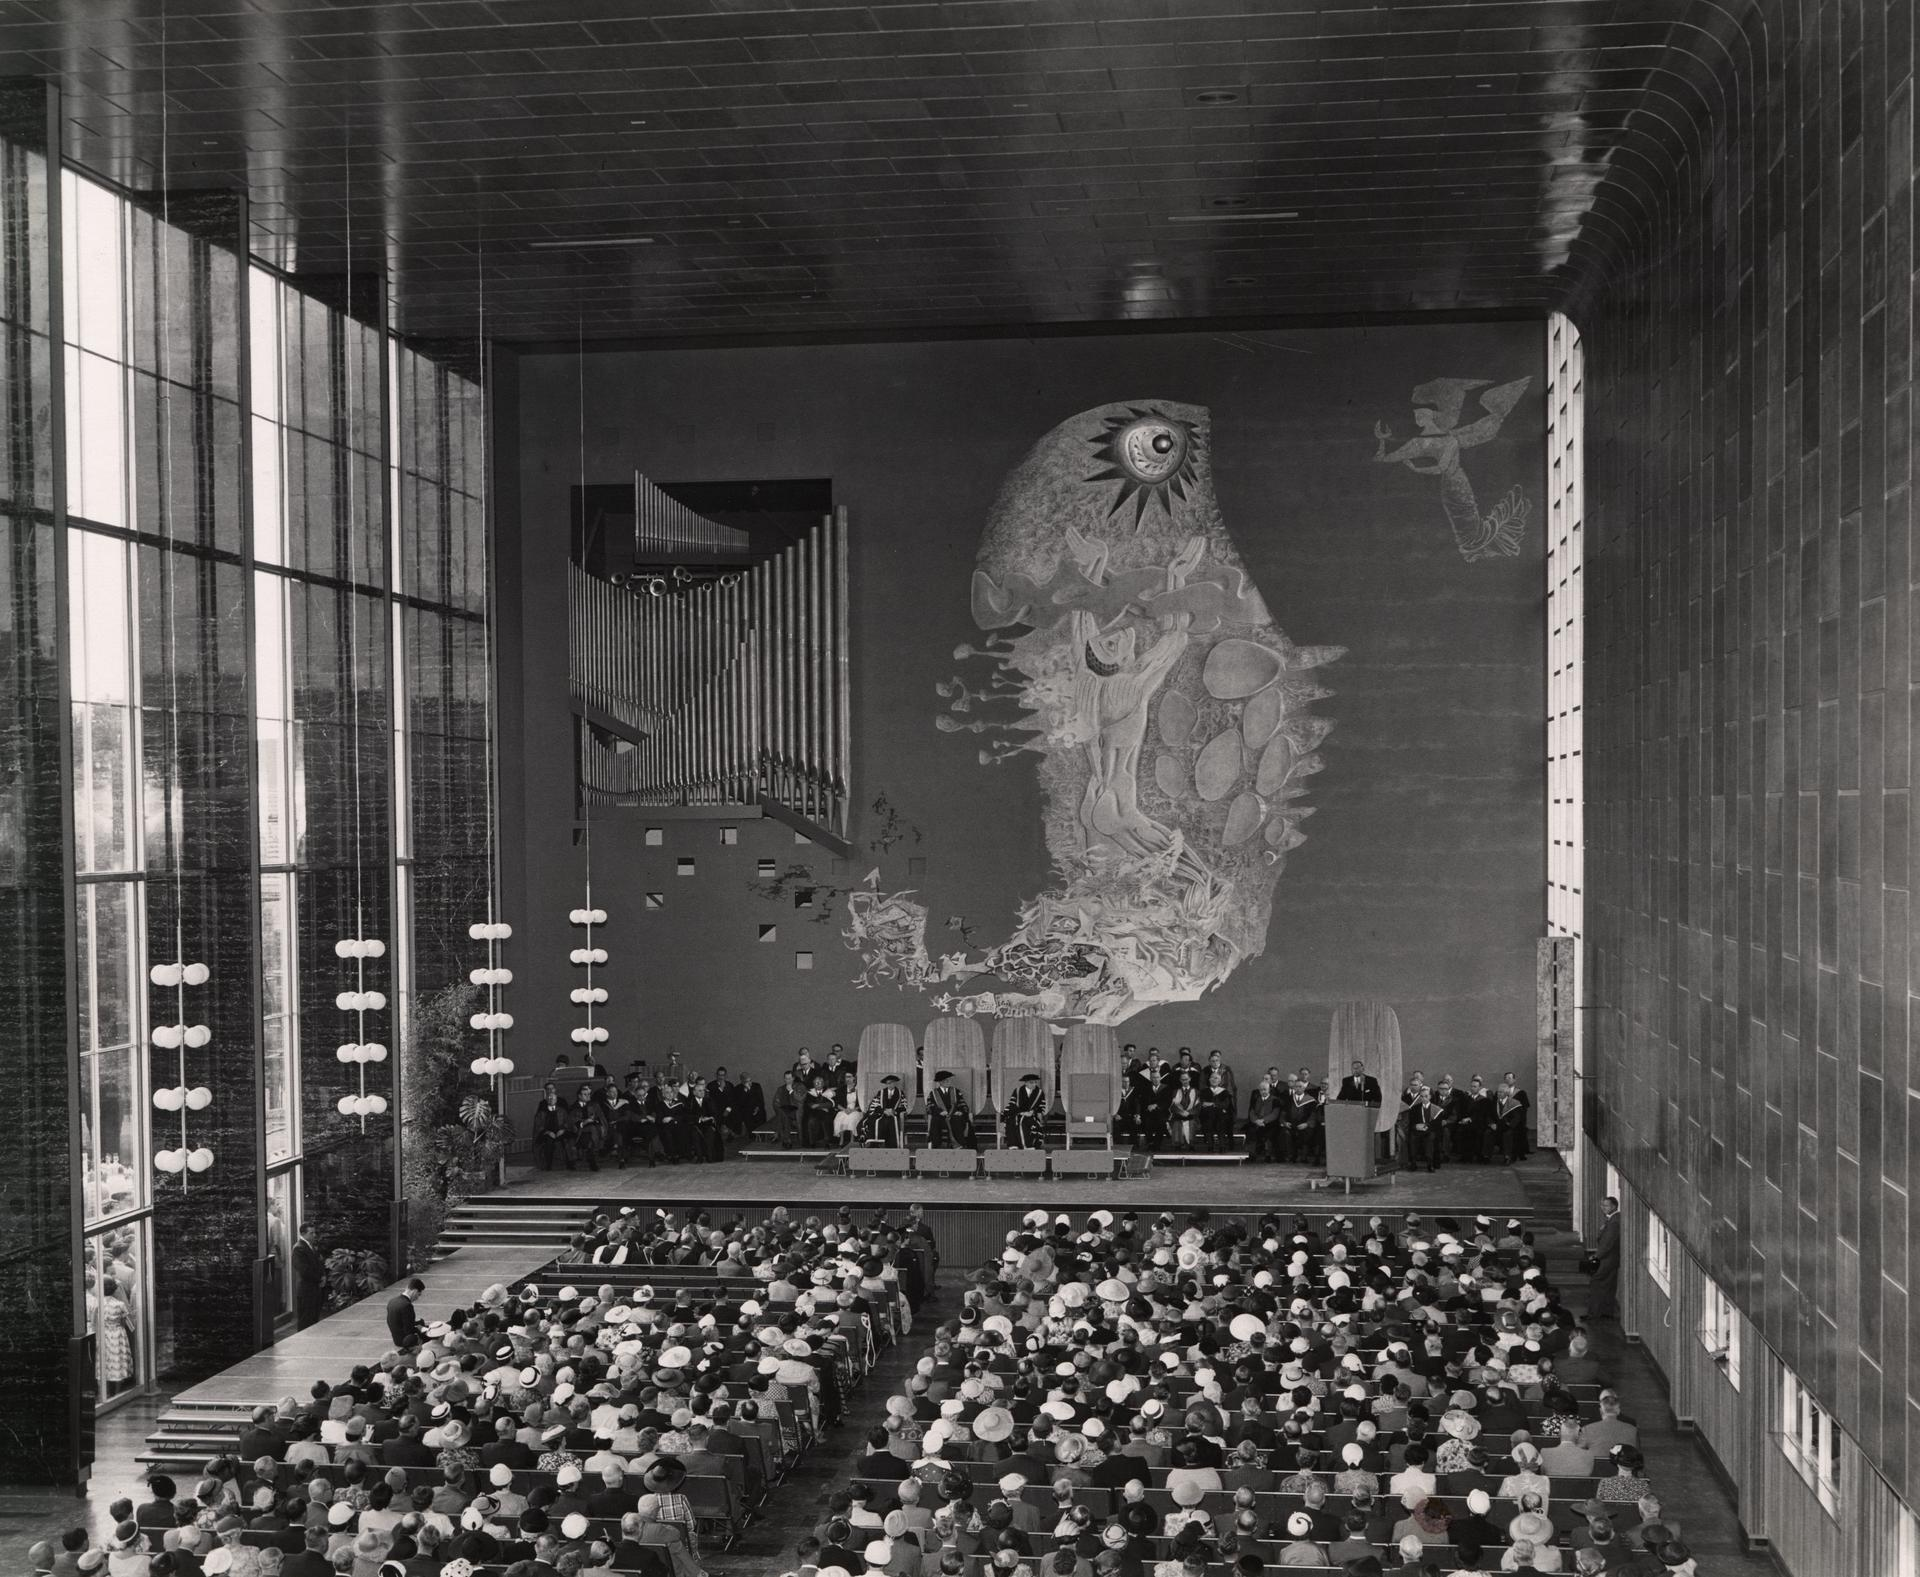 Opening of New Wilson Hall from the balcony, 1956